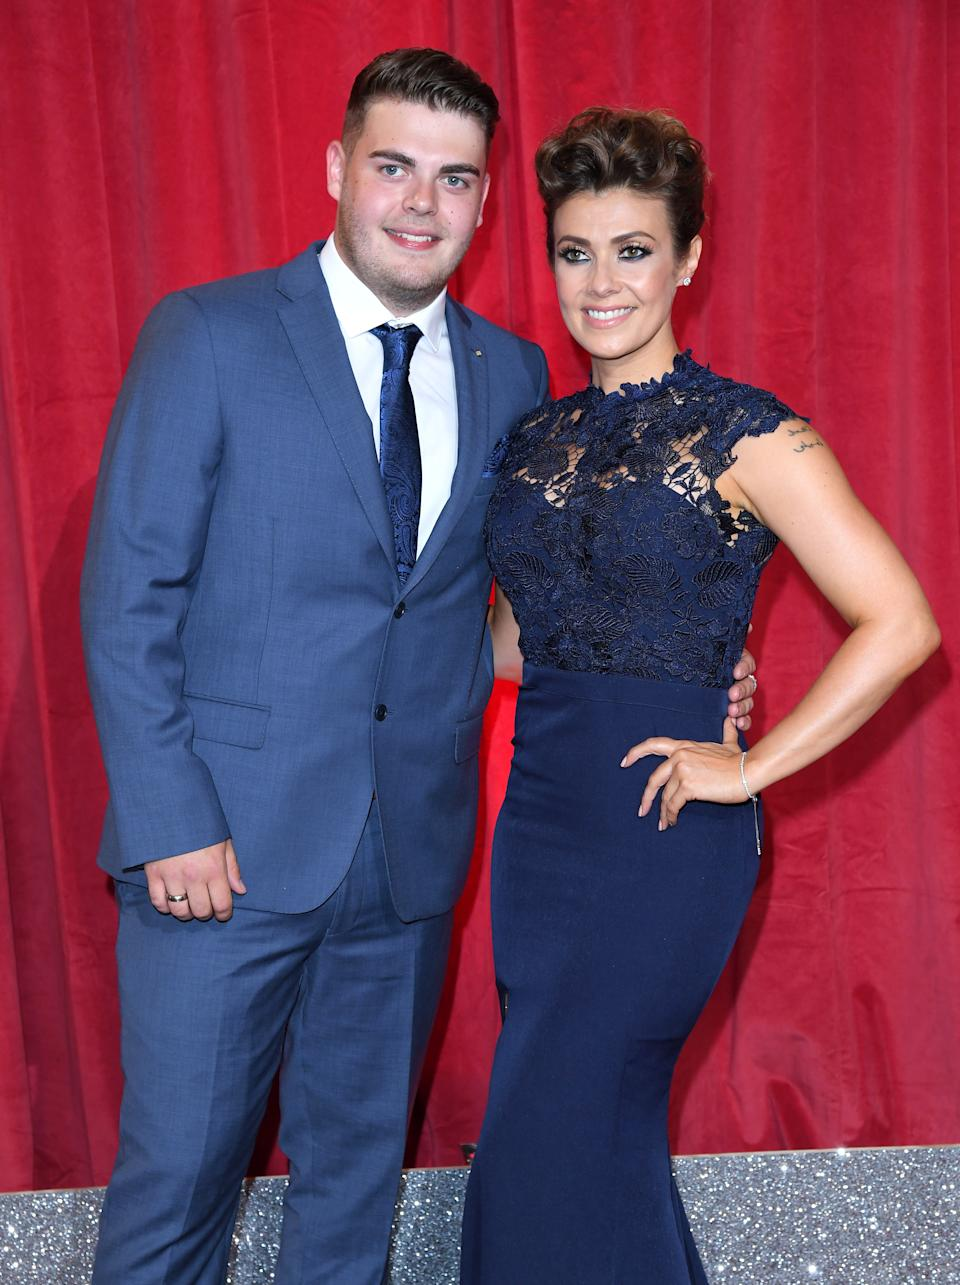 MANCHESTER, ENGLAND - JUNE 03:  Kym Marsh and son David Cunliffe attend the British Soap Awards at The Lowry Theatre on June 3, 2017 in Manchester, England.  (Photo by Karwai Tang/WireImage)